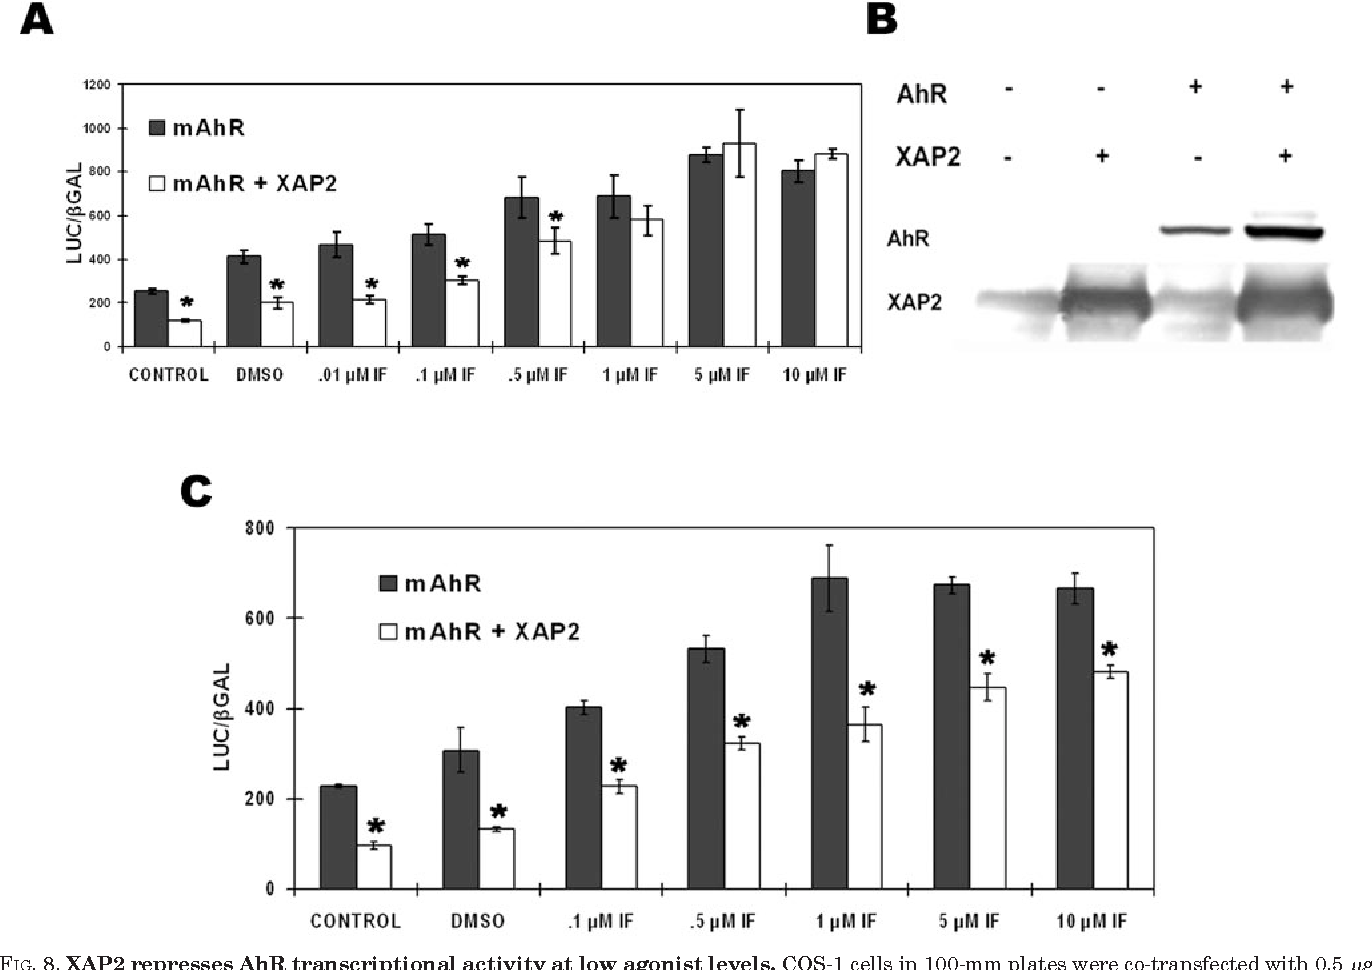 FIG. 8. XAP2 represses AhR transcriptional activity at low agonist levels. COS-1 cells in 100-mm plates were co-transfected with 0.5 g of pcDNA3- mAhR, 100 ng of pGudLuc 6.1, 30 ng of pCMV- Gal, either 2 or 4 g of pCI/XAP2, and pCI was added, for a total of 8 g of DNA. After 9 h transfected cells were transferred to 12-well plates; 13 h later cells were treated with iodoflavone. After 8 h in the presence of ligand, cells were lysed, and reporter activity was assessed. A, COS-1 cells were co-transfected with 4 g of pCI-XAP2. B, the level of AhR and XAP2 in cells transfected with the same vector composition as in A was assessed by protein blot analysis. C, COS-1 cells were co-transfected with 2 g of pCI-XAP2. An asterisk above the bar corresponds to a statistical difference (p 0.03) using a paired Student's t test. The error bars represent the standard deviation obtained from triplicate samples.